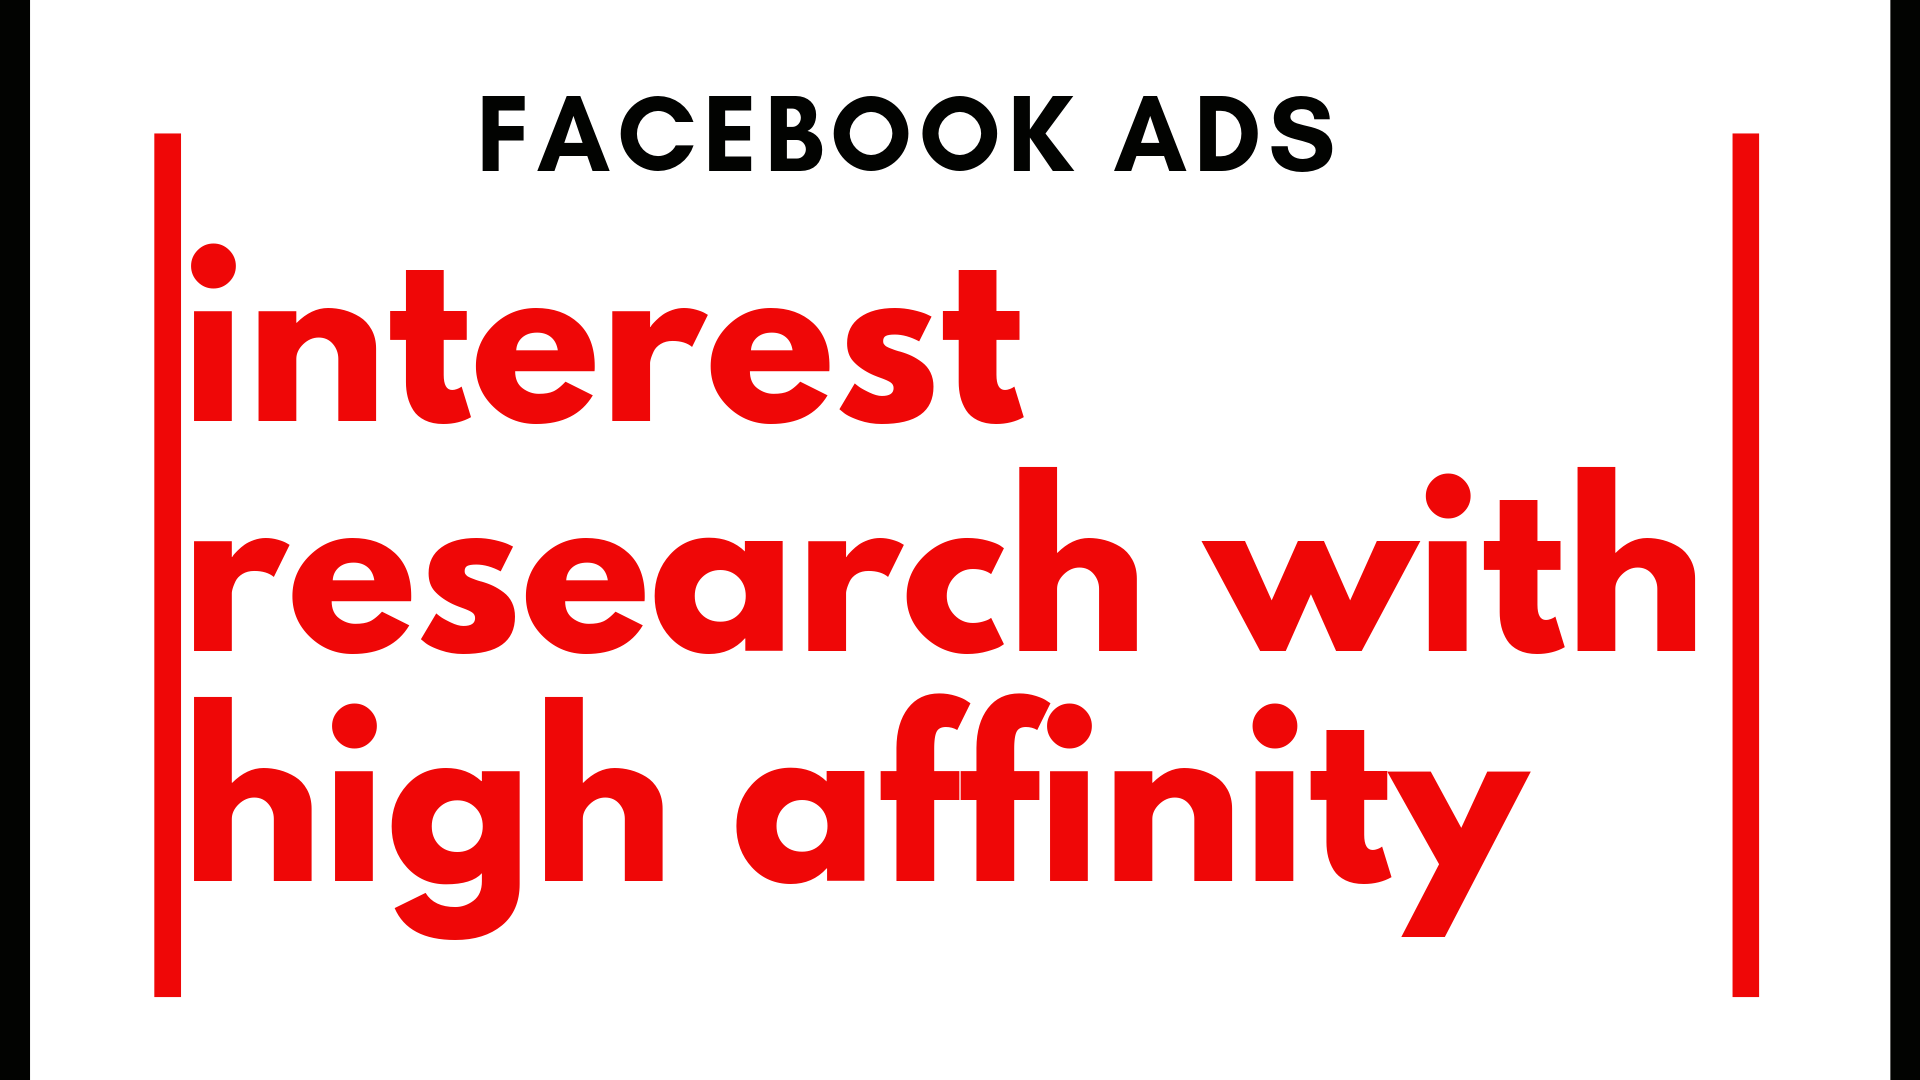 Facebook ads targeting interest research